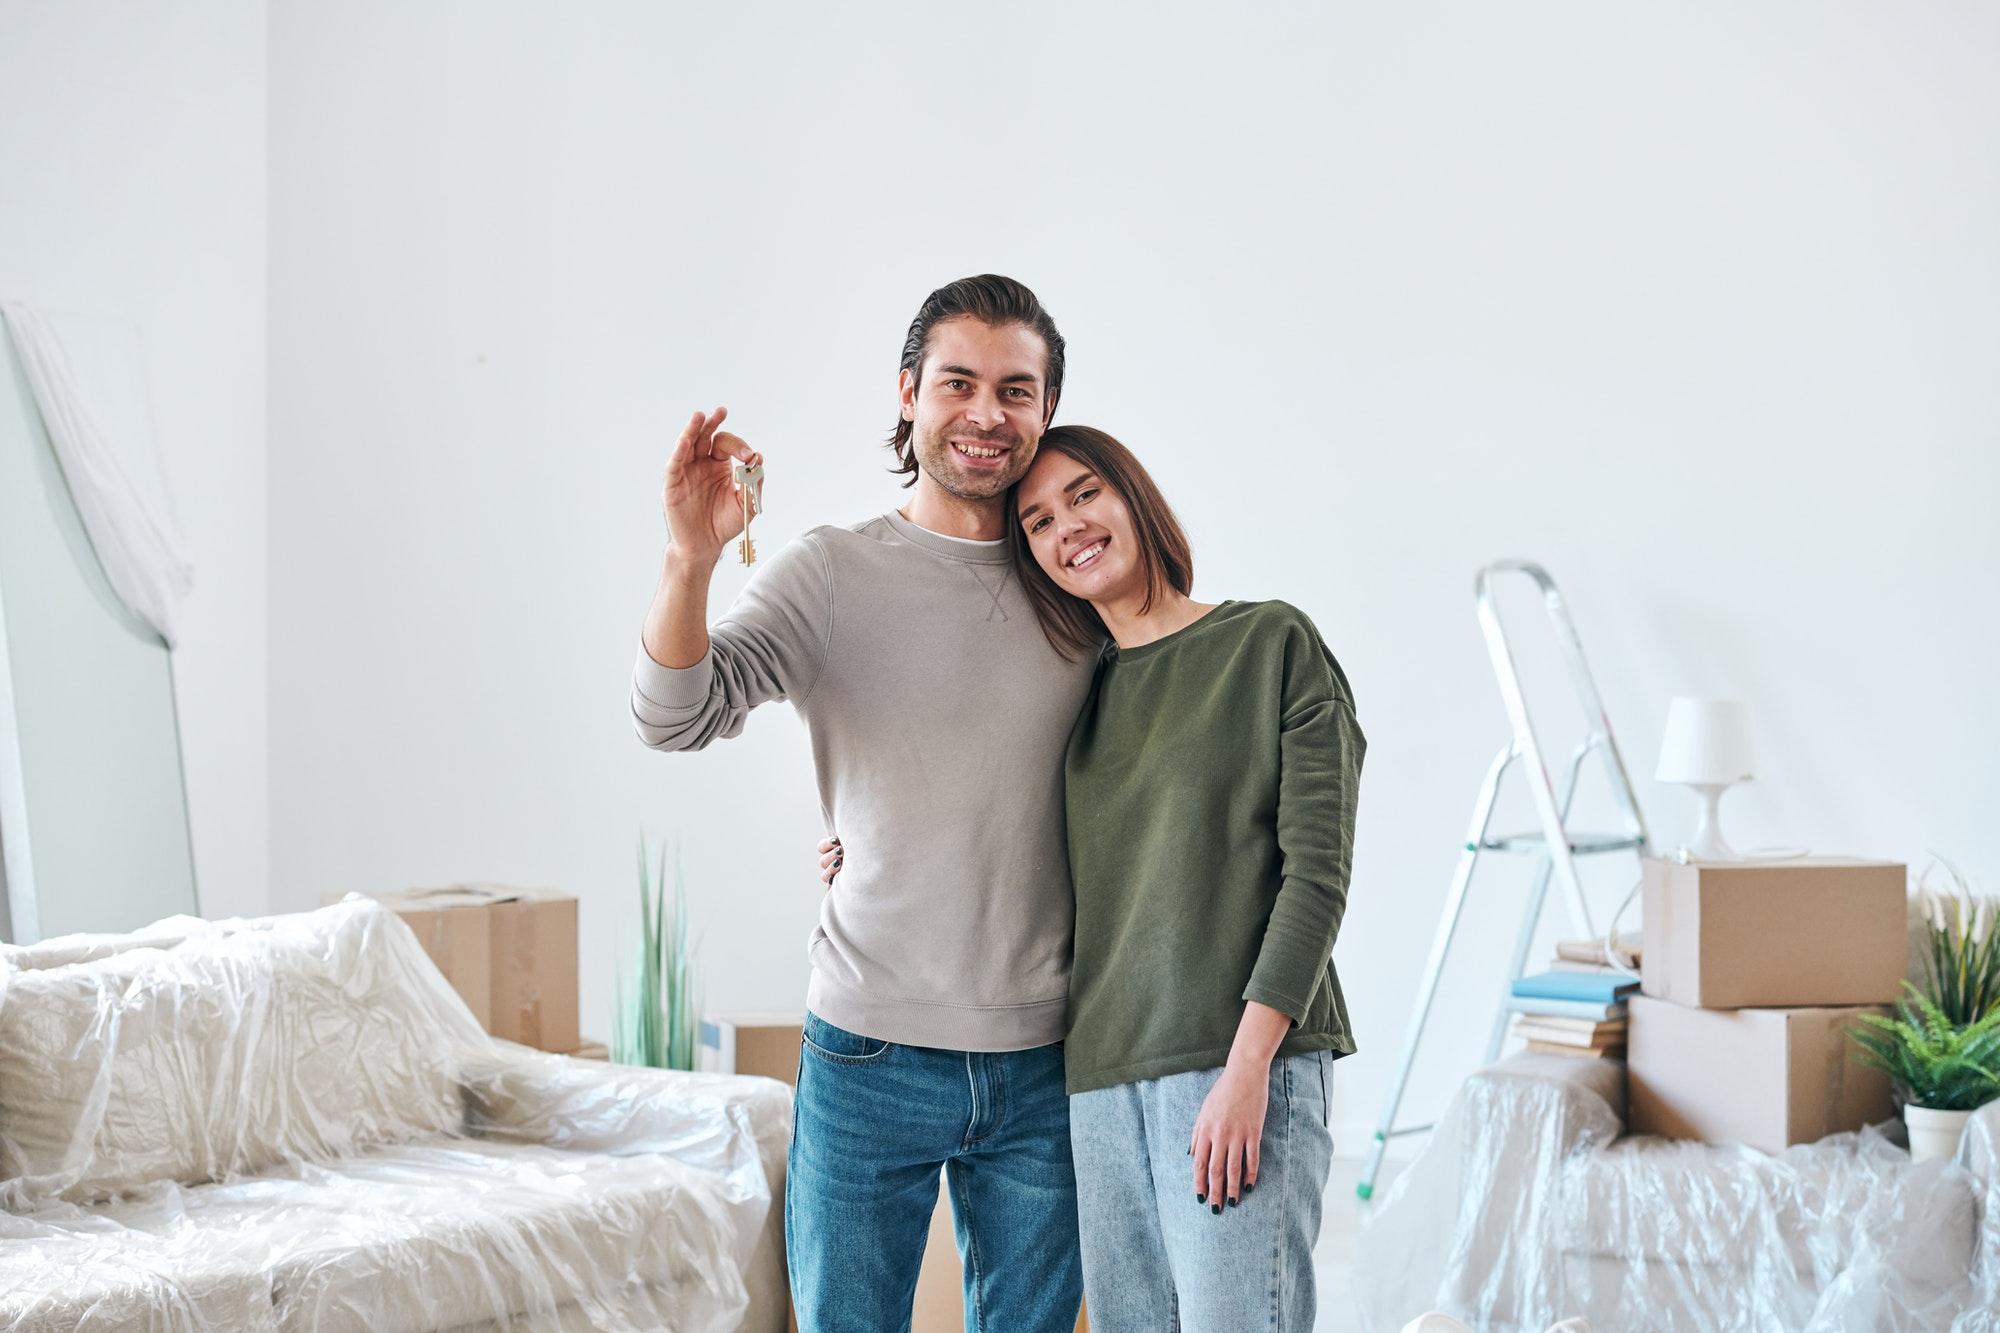 Young affectionate woman embracing her husband with key to their new house